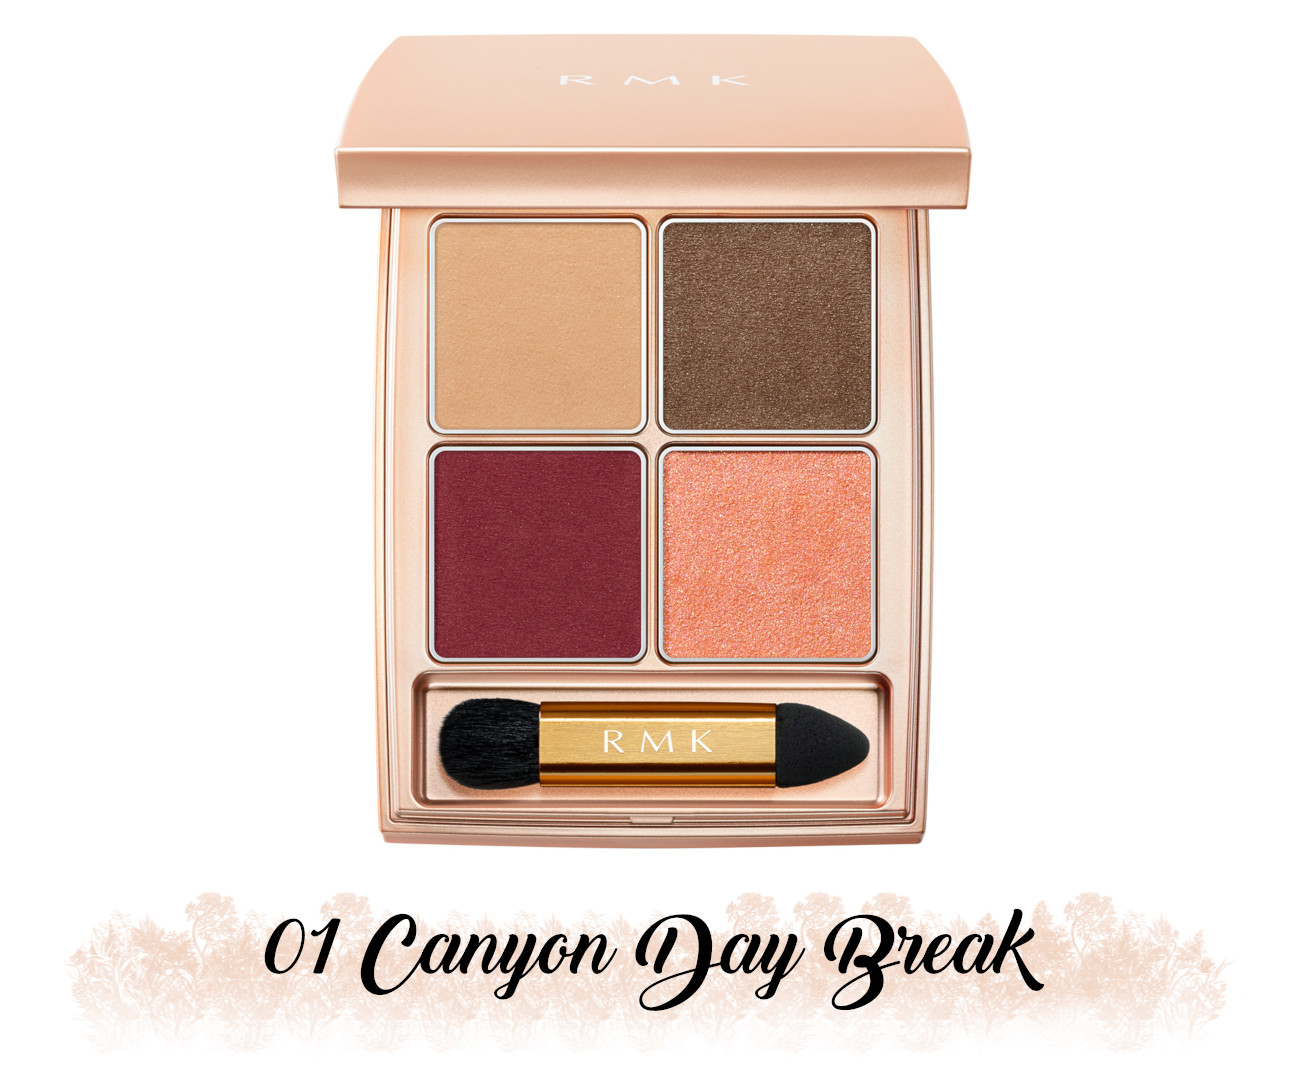 RMK Fall 2021 Collection Rosewood Daydream RMK Rosewood Daydream 4 Eyes 01 Canyon Day Break